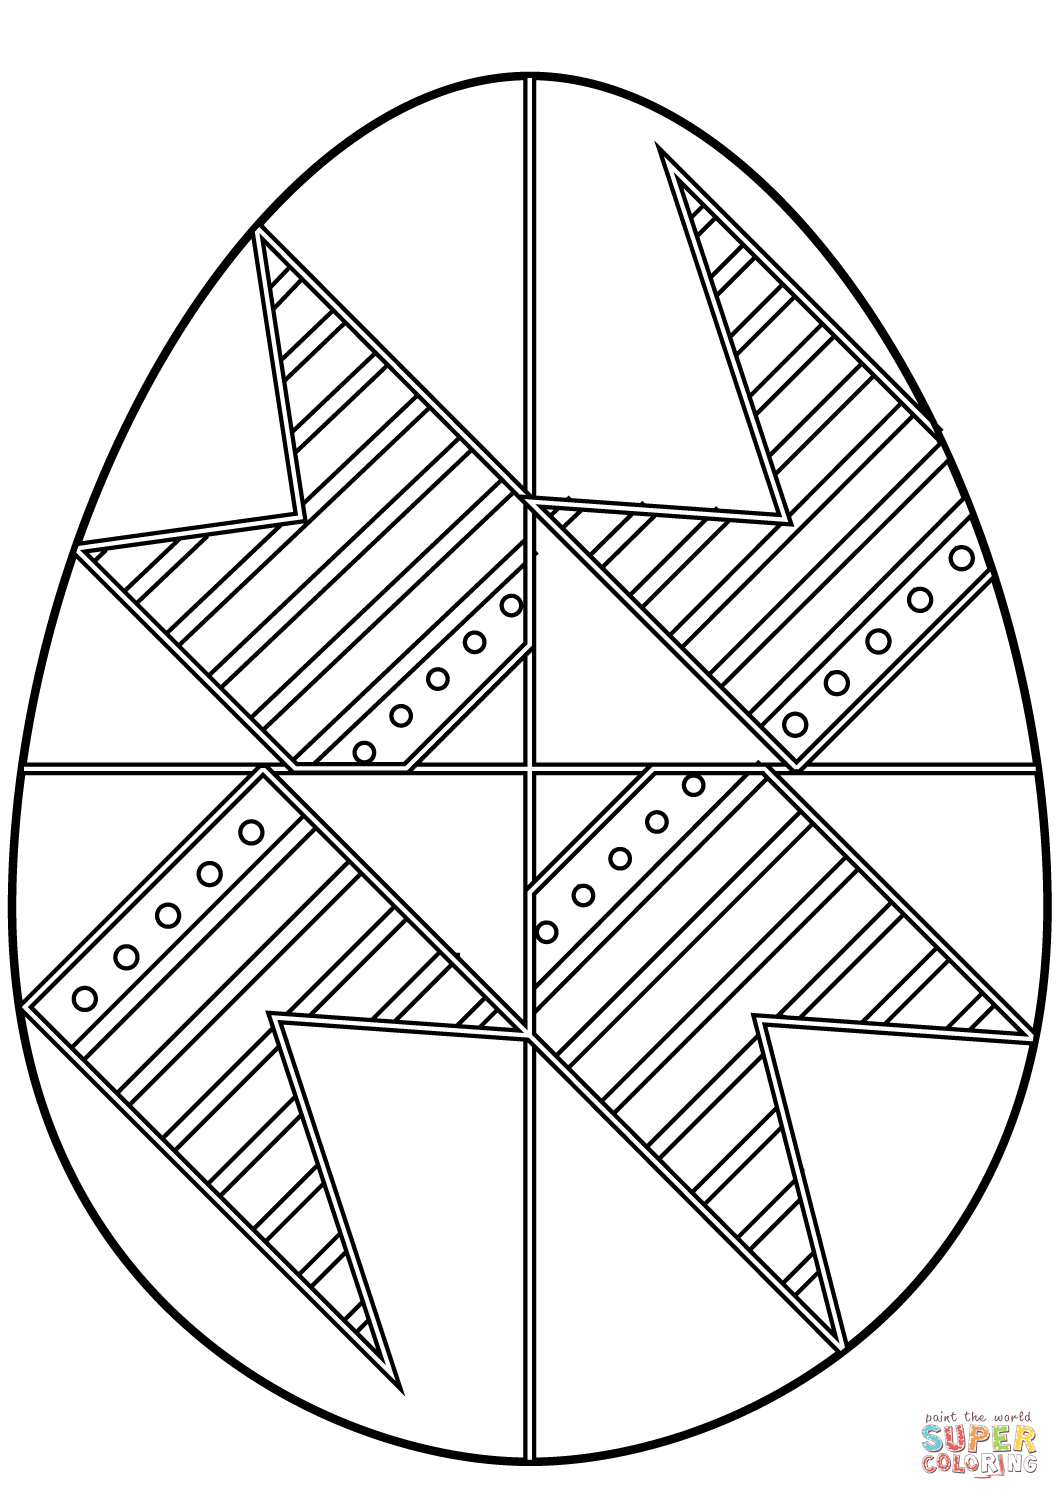 egg coloring sheet easter egg with abstract pattern coloring page free sheet egg coloring